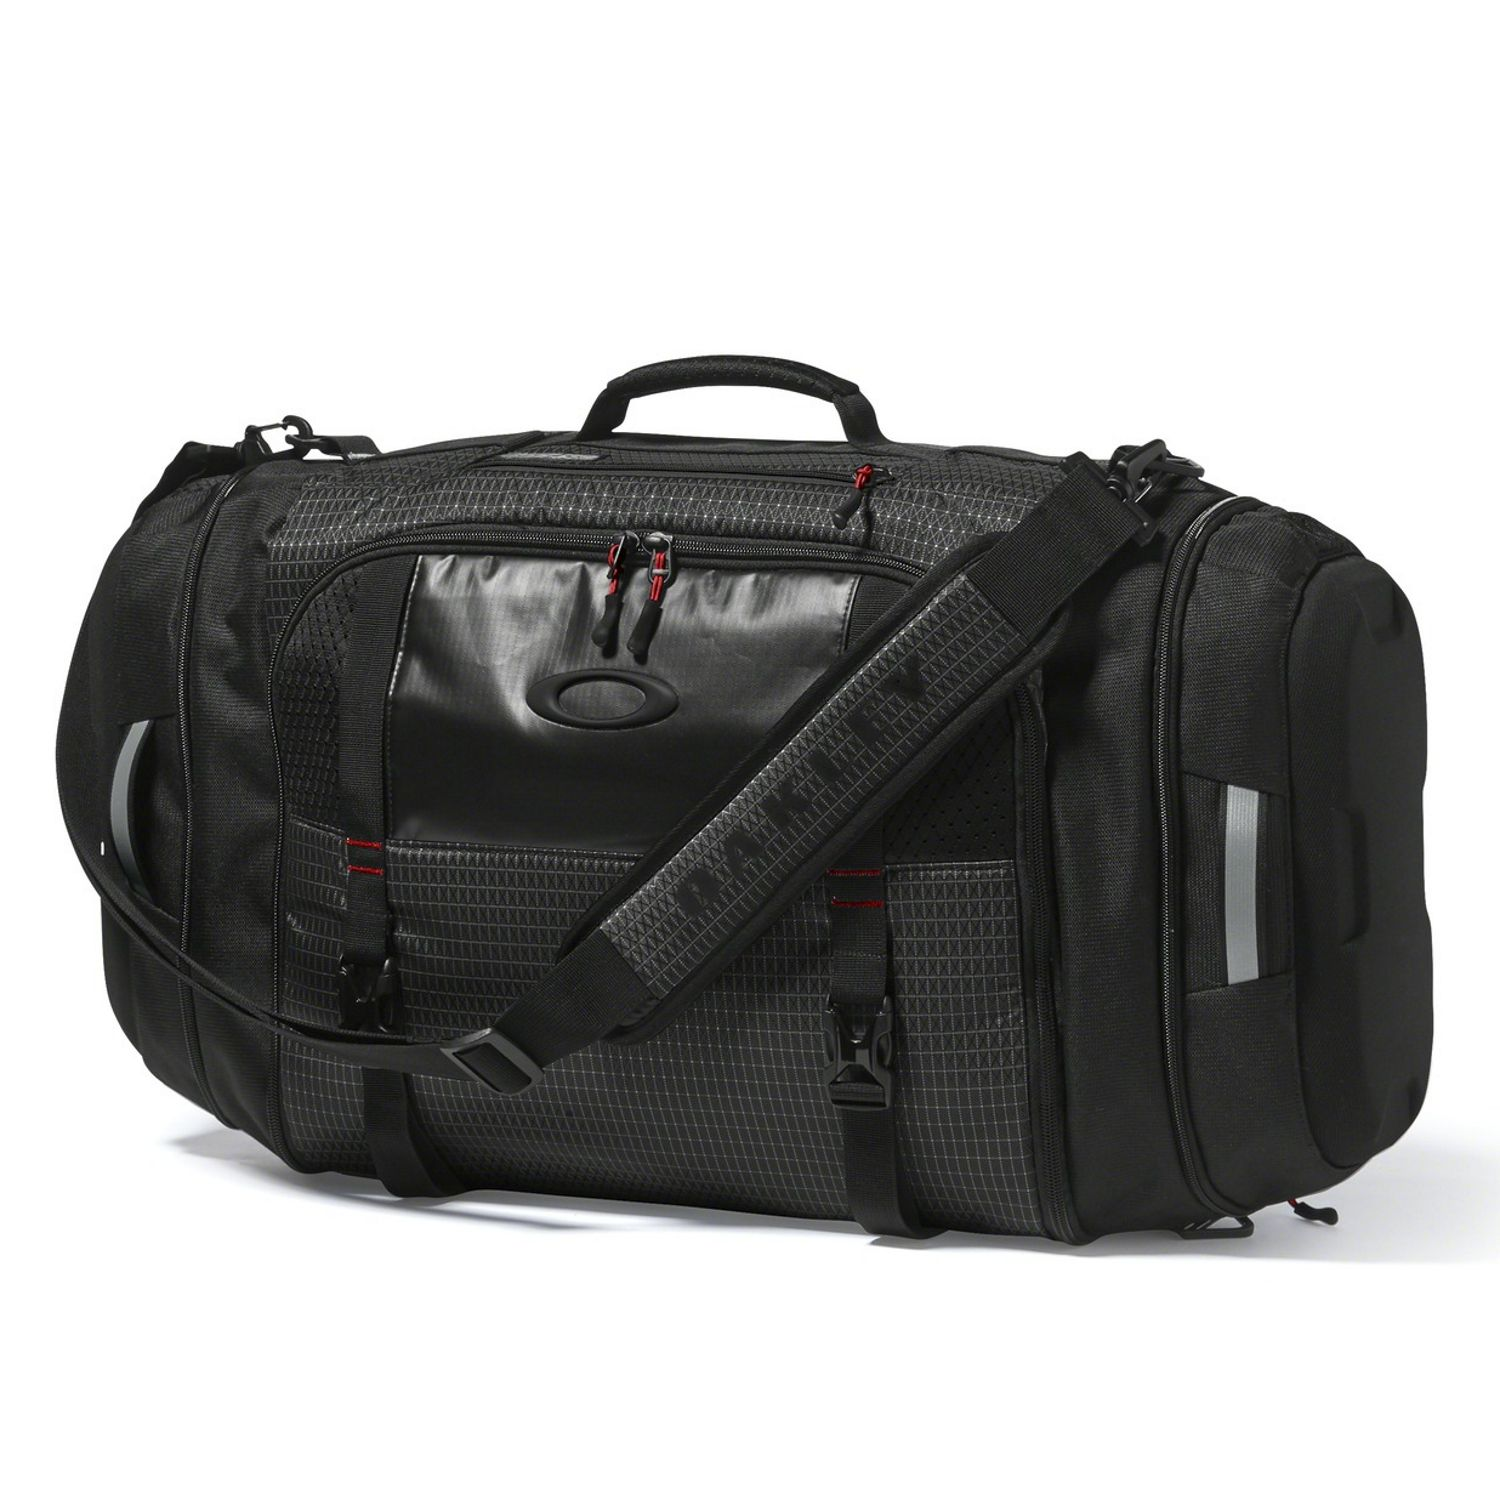 f48d6a813a OAKLEY NEW Men s Link Duffel Bag Jet Black BNWT 888896554865